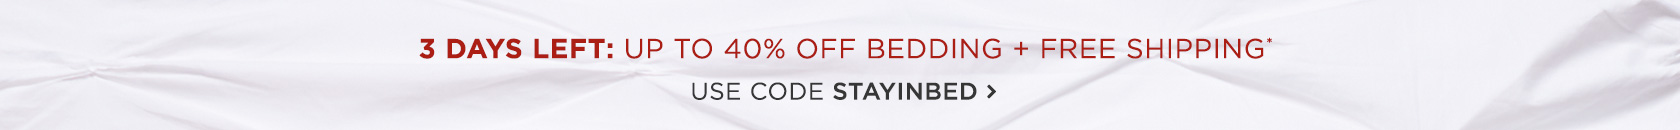 Up To 40 Percent Off Bedding + Free Shipping - Use Code STAYINBED